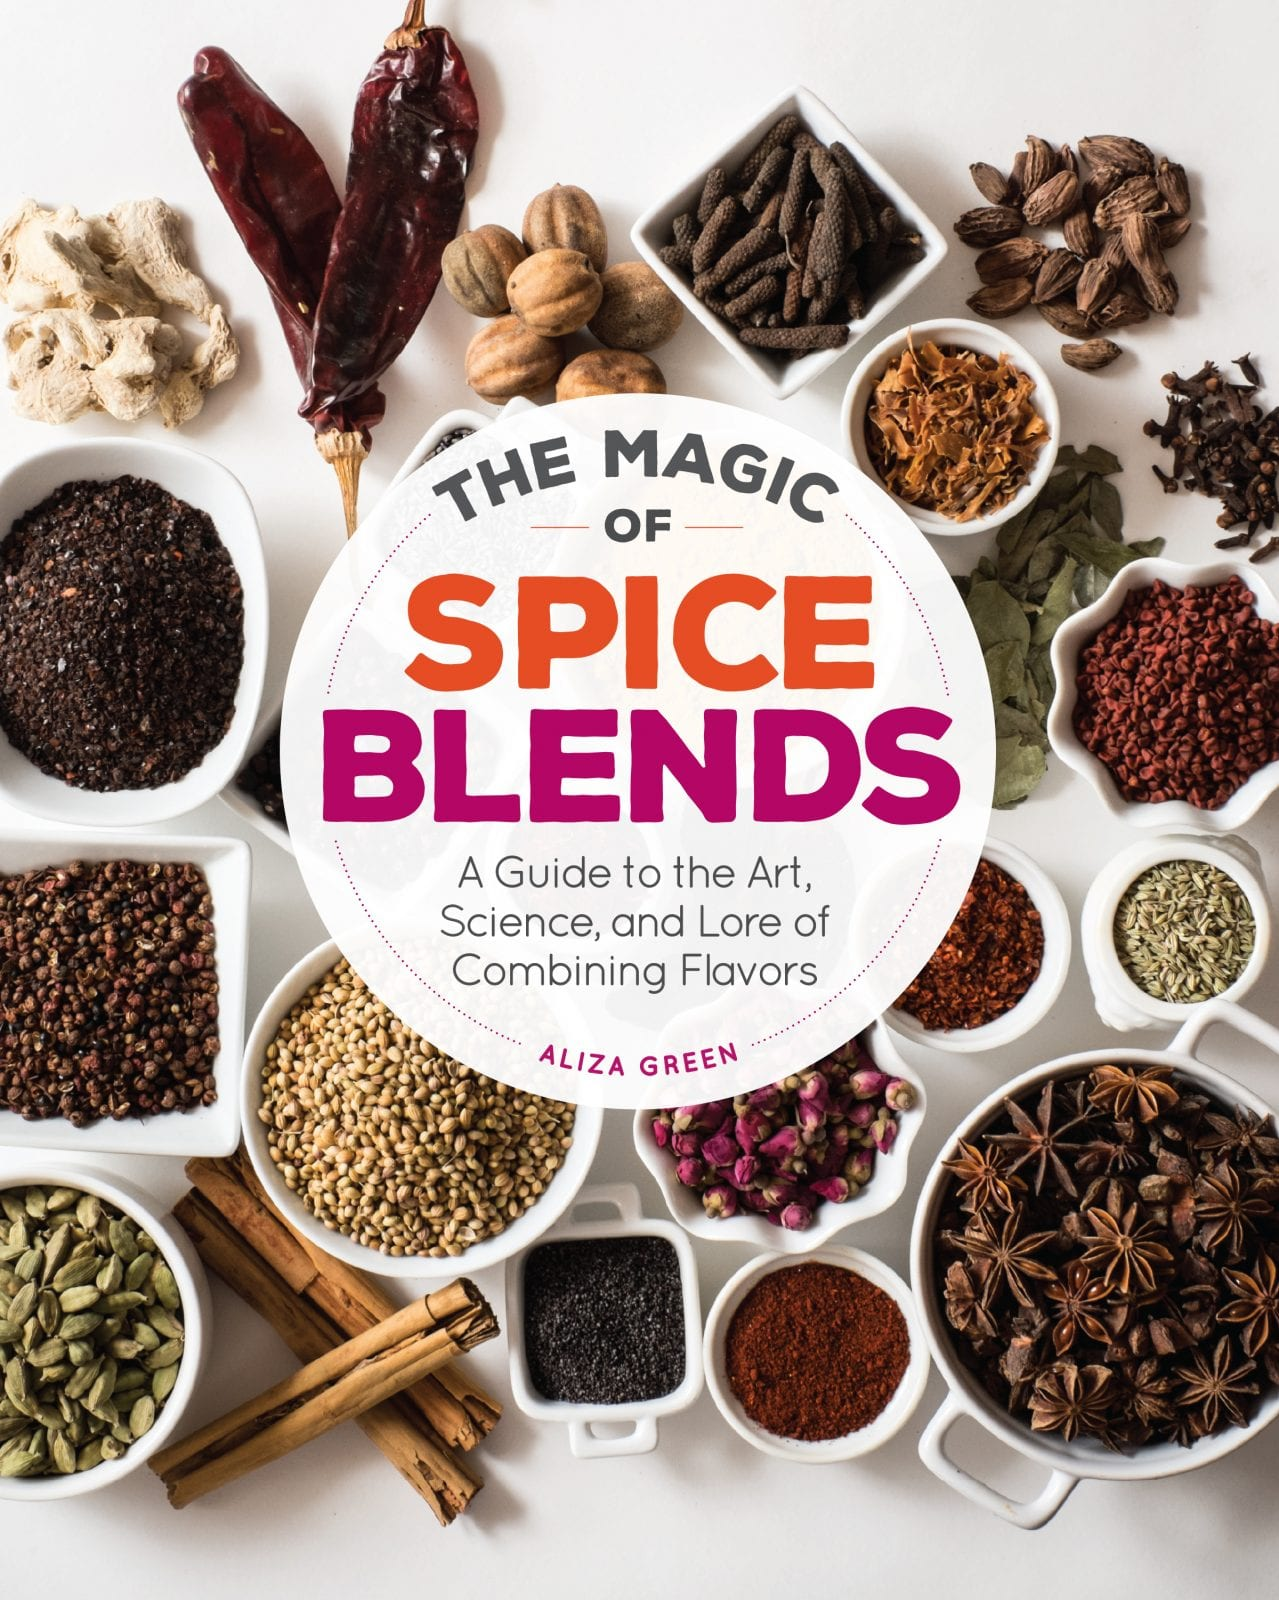 Magic of Spice Blends Cover Image 02 04 15